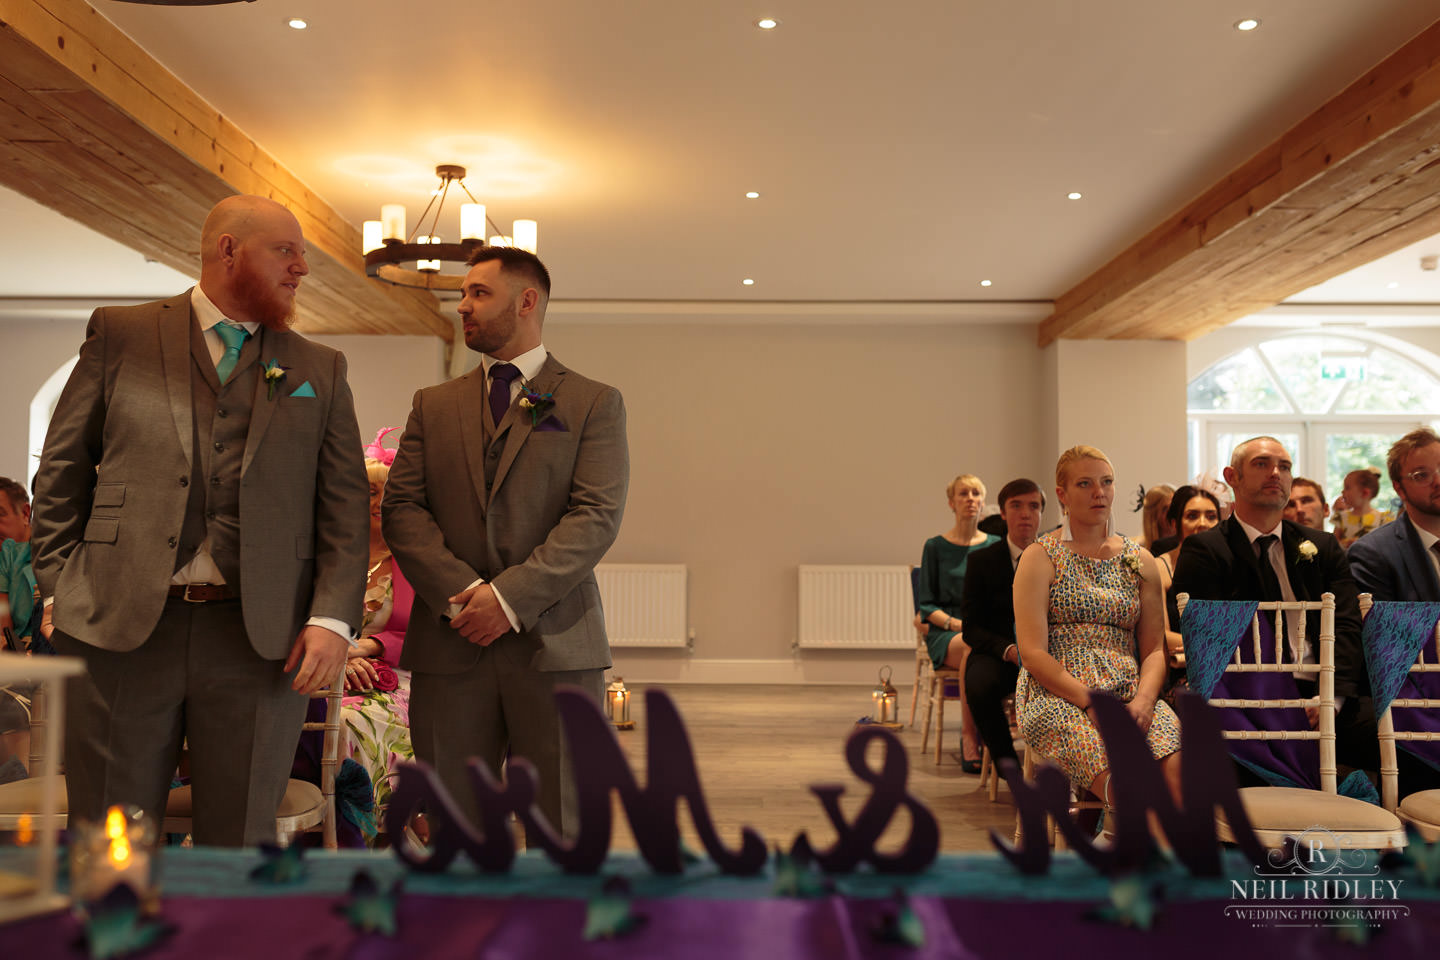 Groom waits patiently for his bride at The Mill at Conder Green